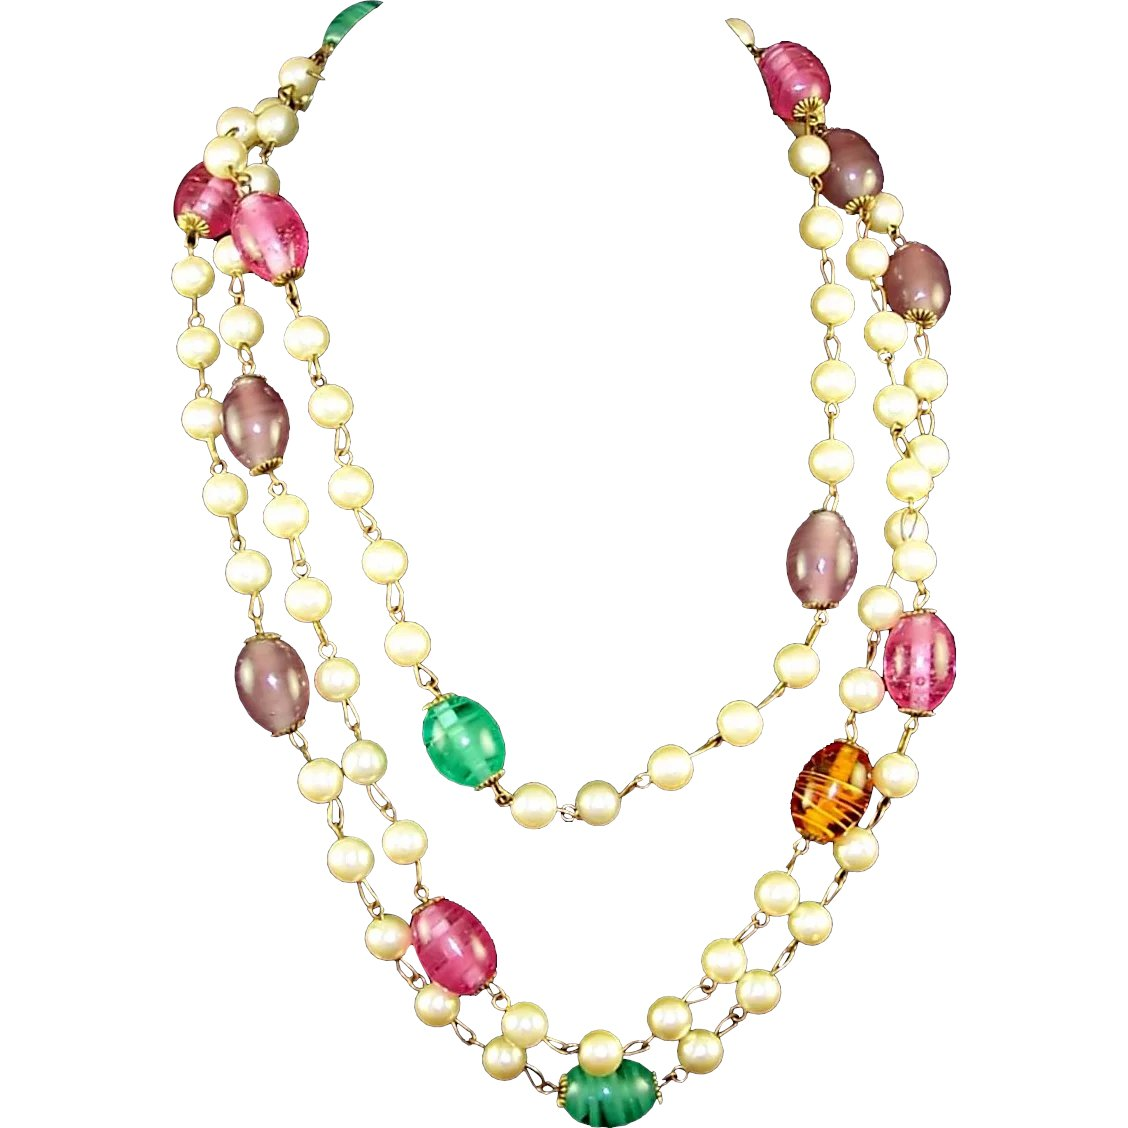 20e42a3be946d8 Gripoix Poured Glass Beads and Simulated Pearls Sautoir Necklace : Sharon's  Sparkles   Ruby Lane